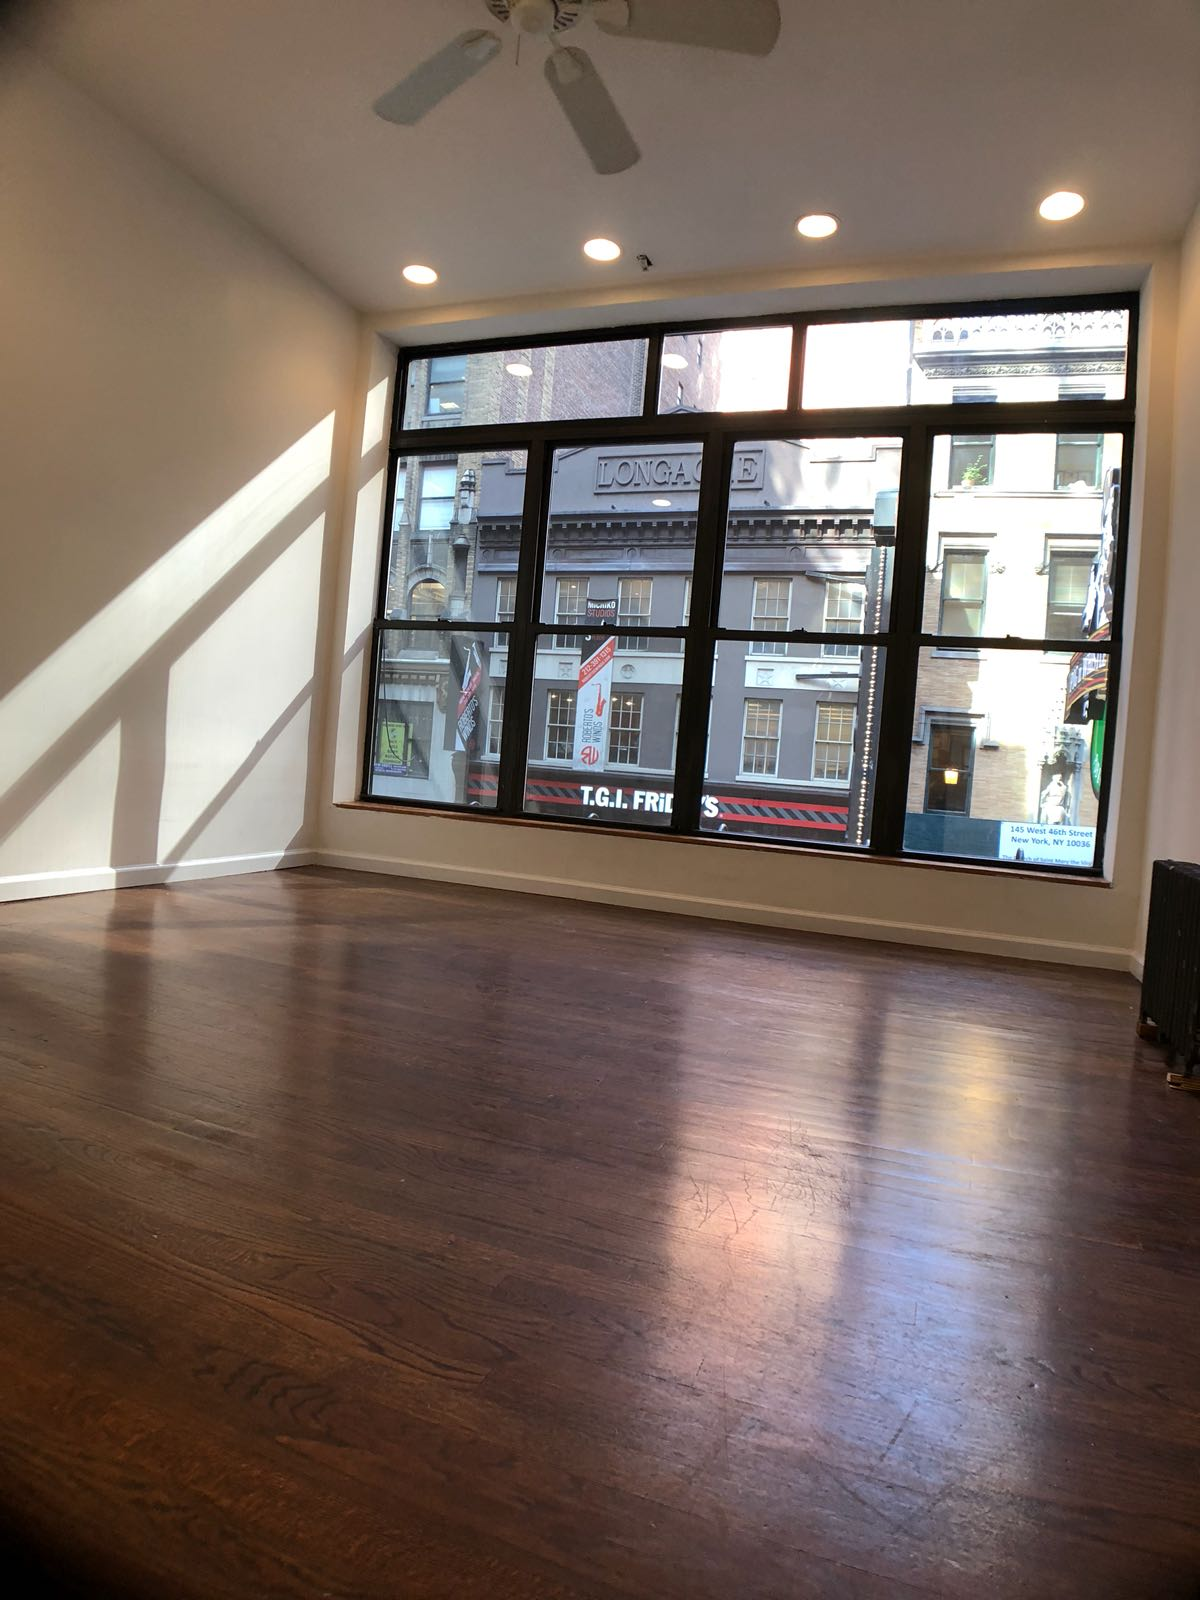 NEWLY BUILT OUT SECOND FLOOR RETAIL SPACE  *NO BROKER FEE*   RENT:  $4,200/month   SIZE:  600 SF  LOCATION:  46th Street between 6th & 7th Avenue  COMMENTS: - Newly Built with Hardwood Floors and White Walls - Brand New Bathroom - Full Kitchen in Place  PERFECT FOR: - Hair Salon - Nail Salon - Massage  - Spa - Acupuncture  - General Office Use - Tech Company - Start-Up Companies - Financial Office - Accounting Firm - Law Firm  *ALL USES CONSIDERED*  CONTACT:  Aaron Aziz (516) 355-8018  Access to all commercial spaces in any of the 5 Boroughs. Feel free to contact me with your requirements or any questions you may have.